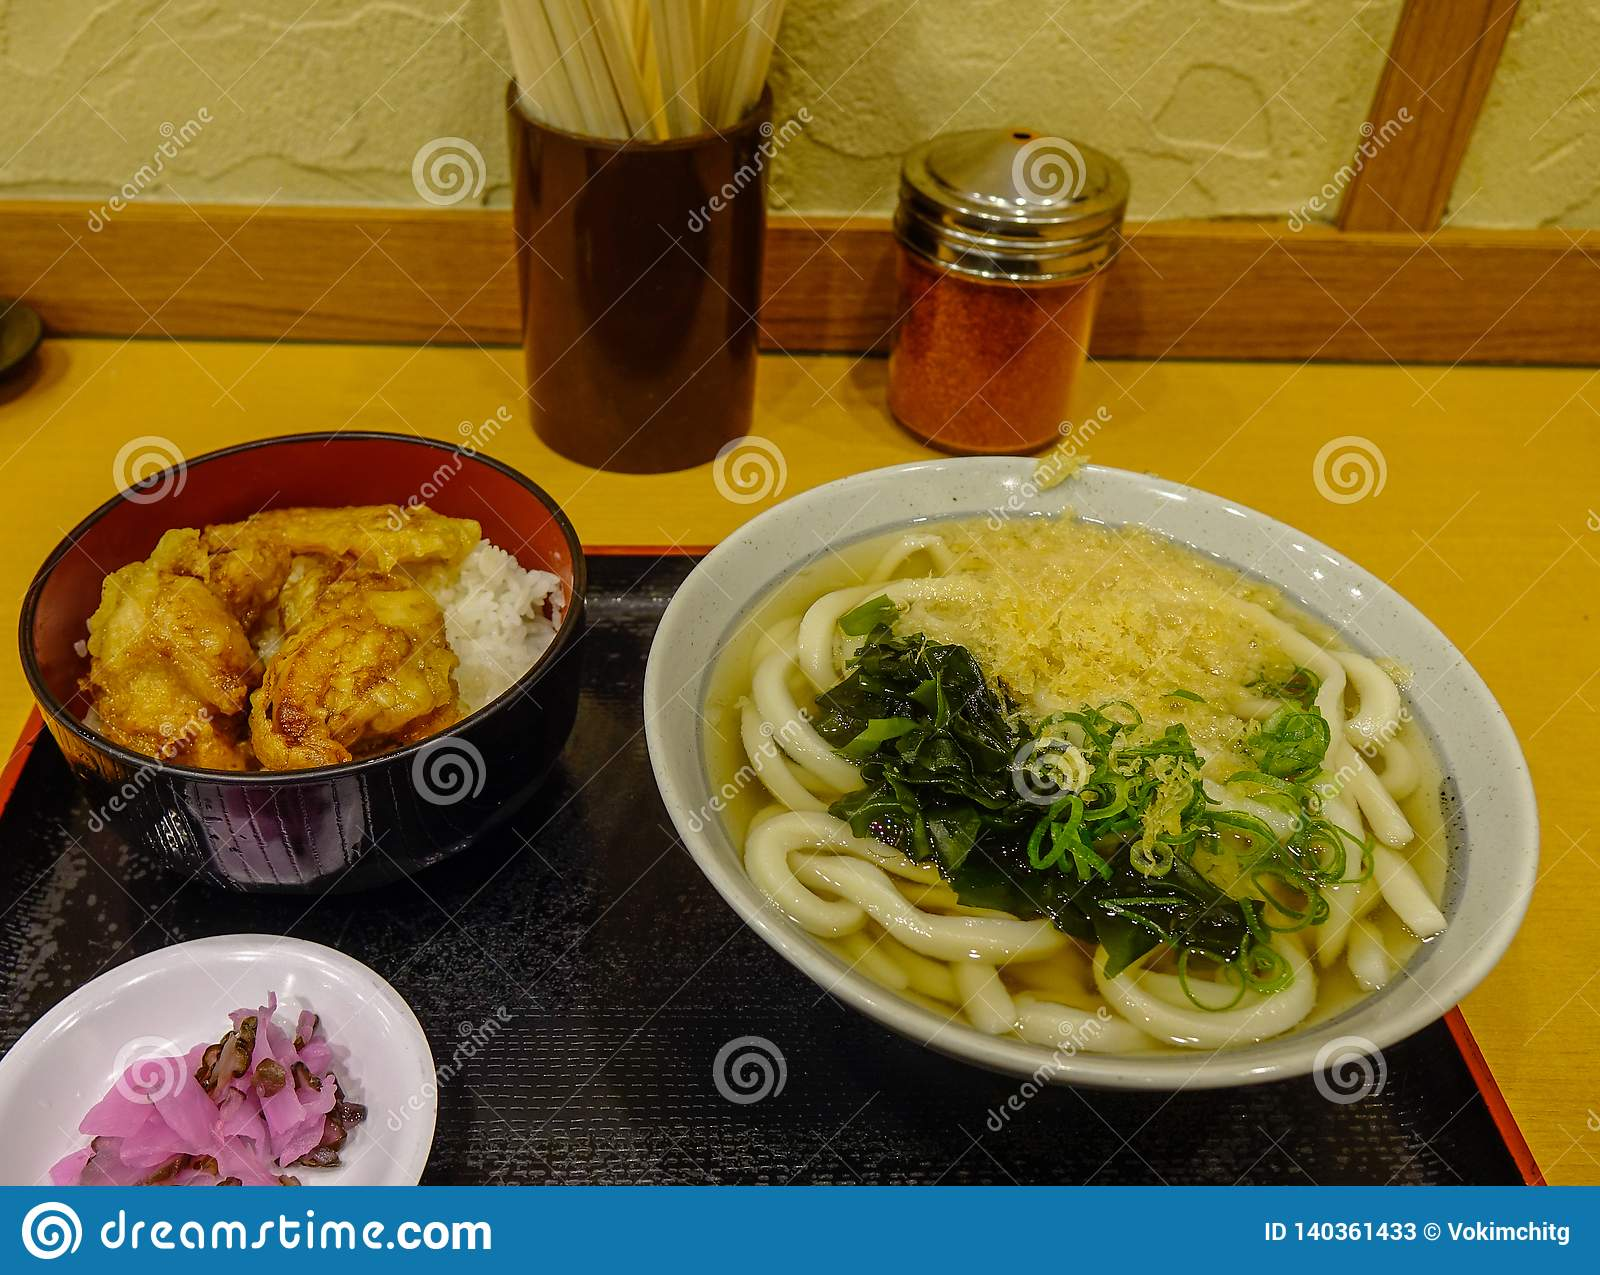 Udon noodle soup for lunch